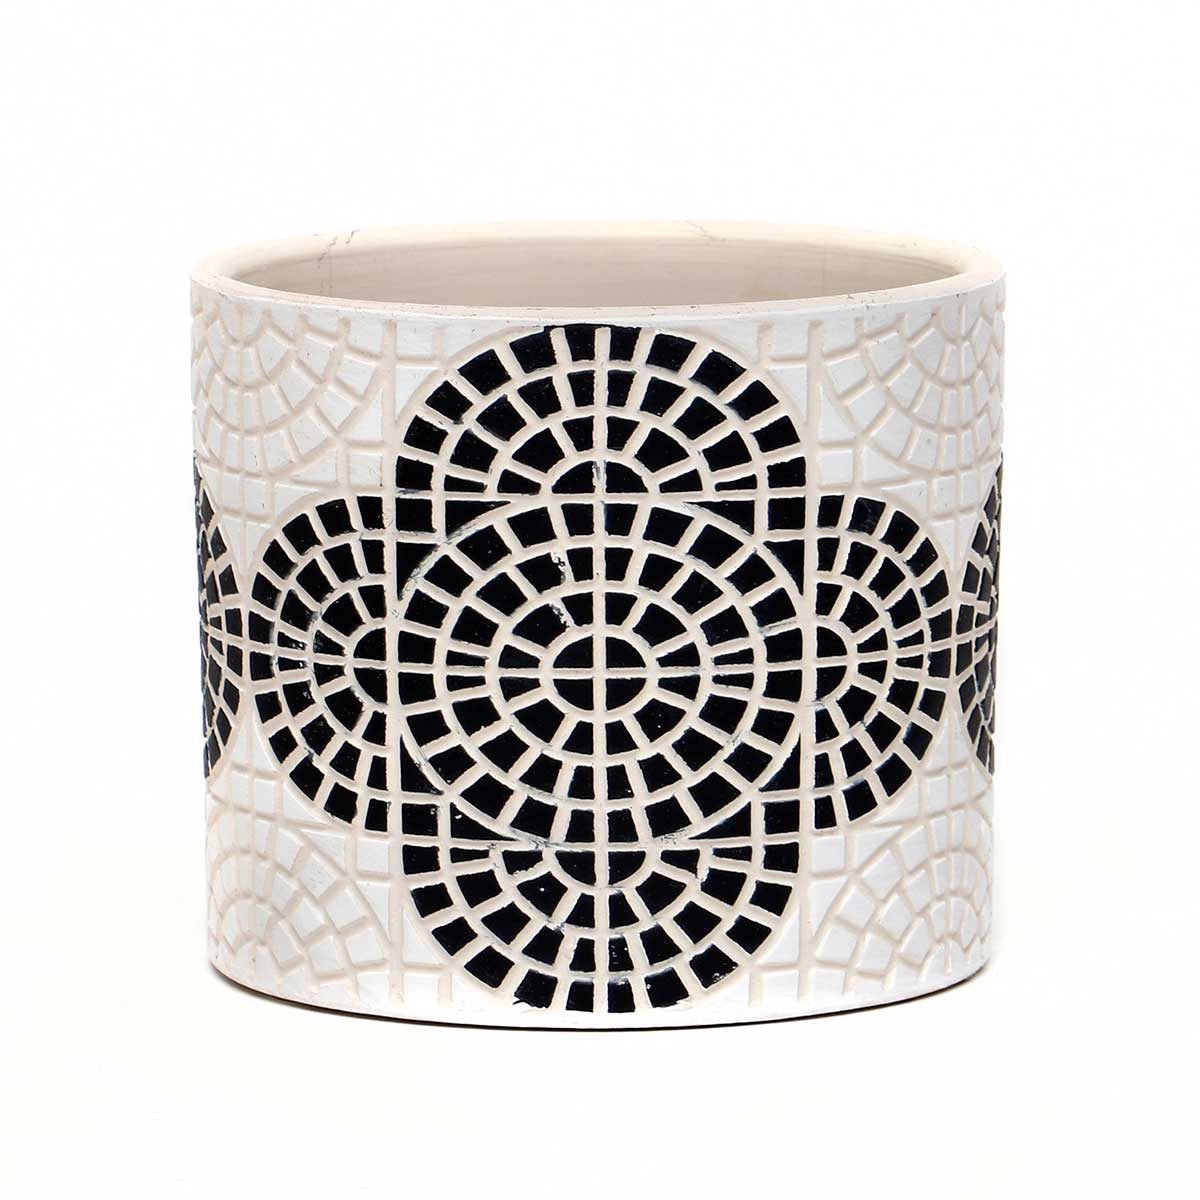 WHITE CONCRETE BLACK MOSAIC PATTERN POT